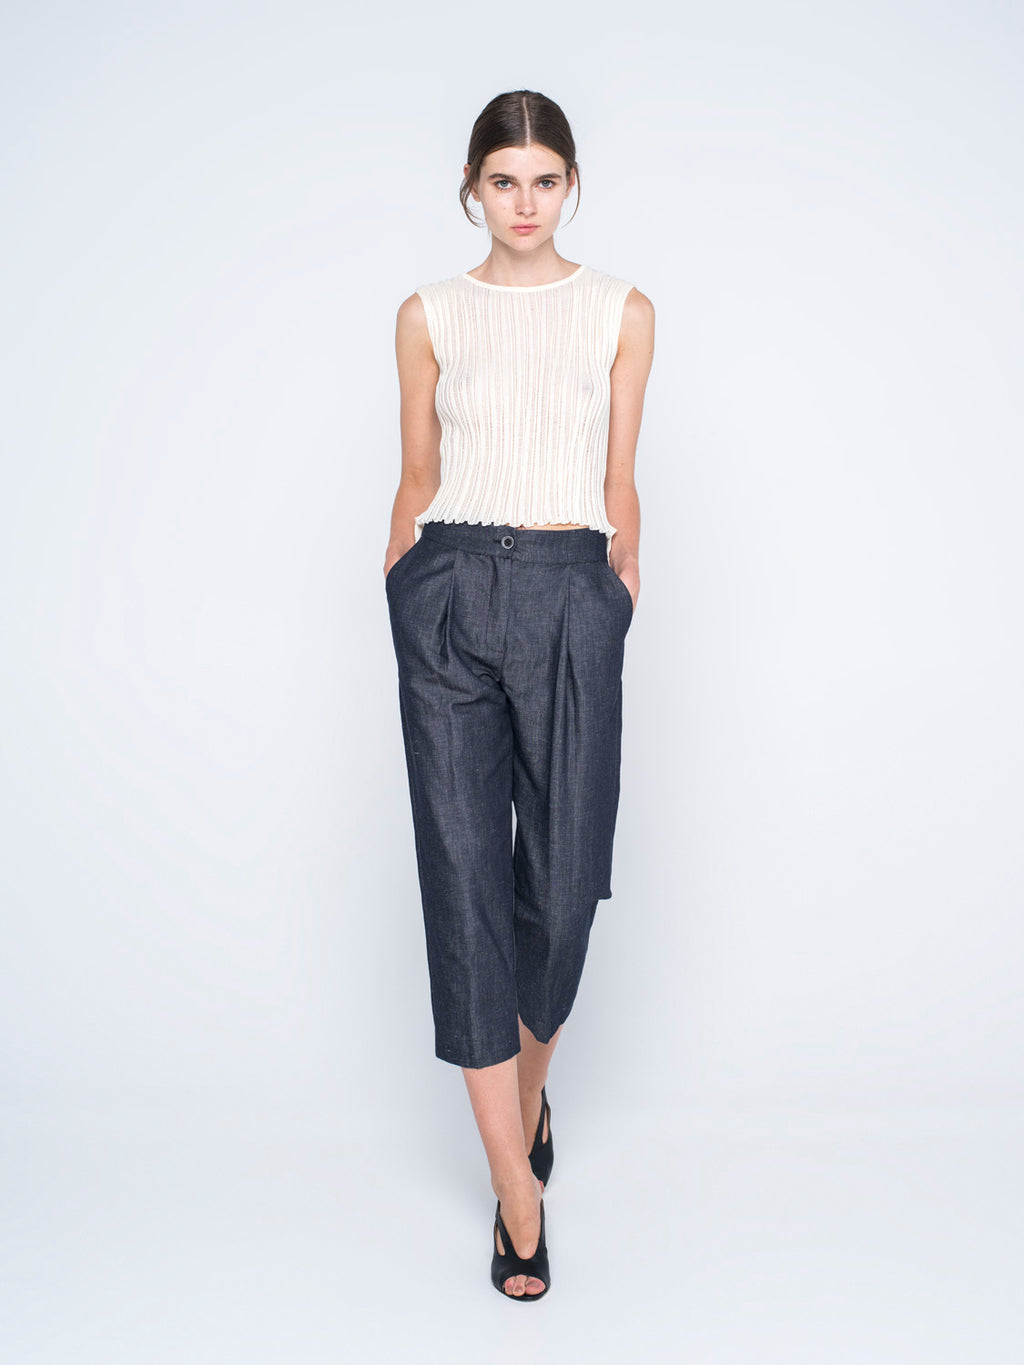 "PANTS""VEGETAL DENIM"" BY IOANNA KOURBELA"